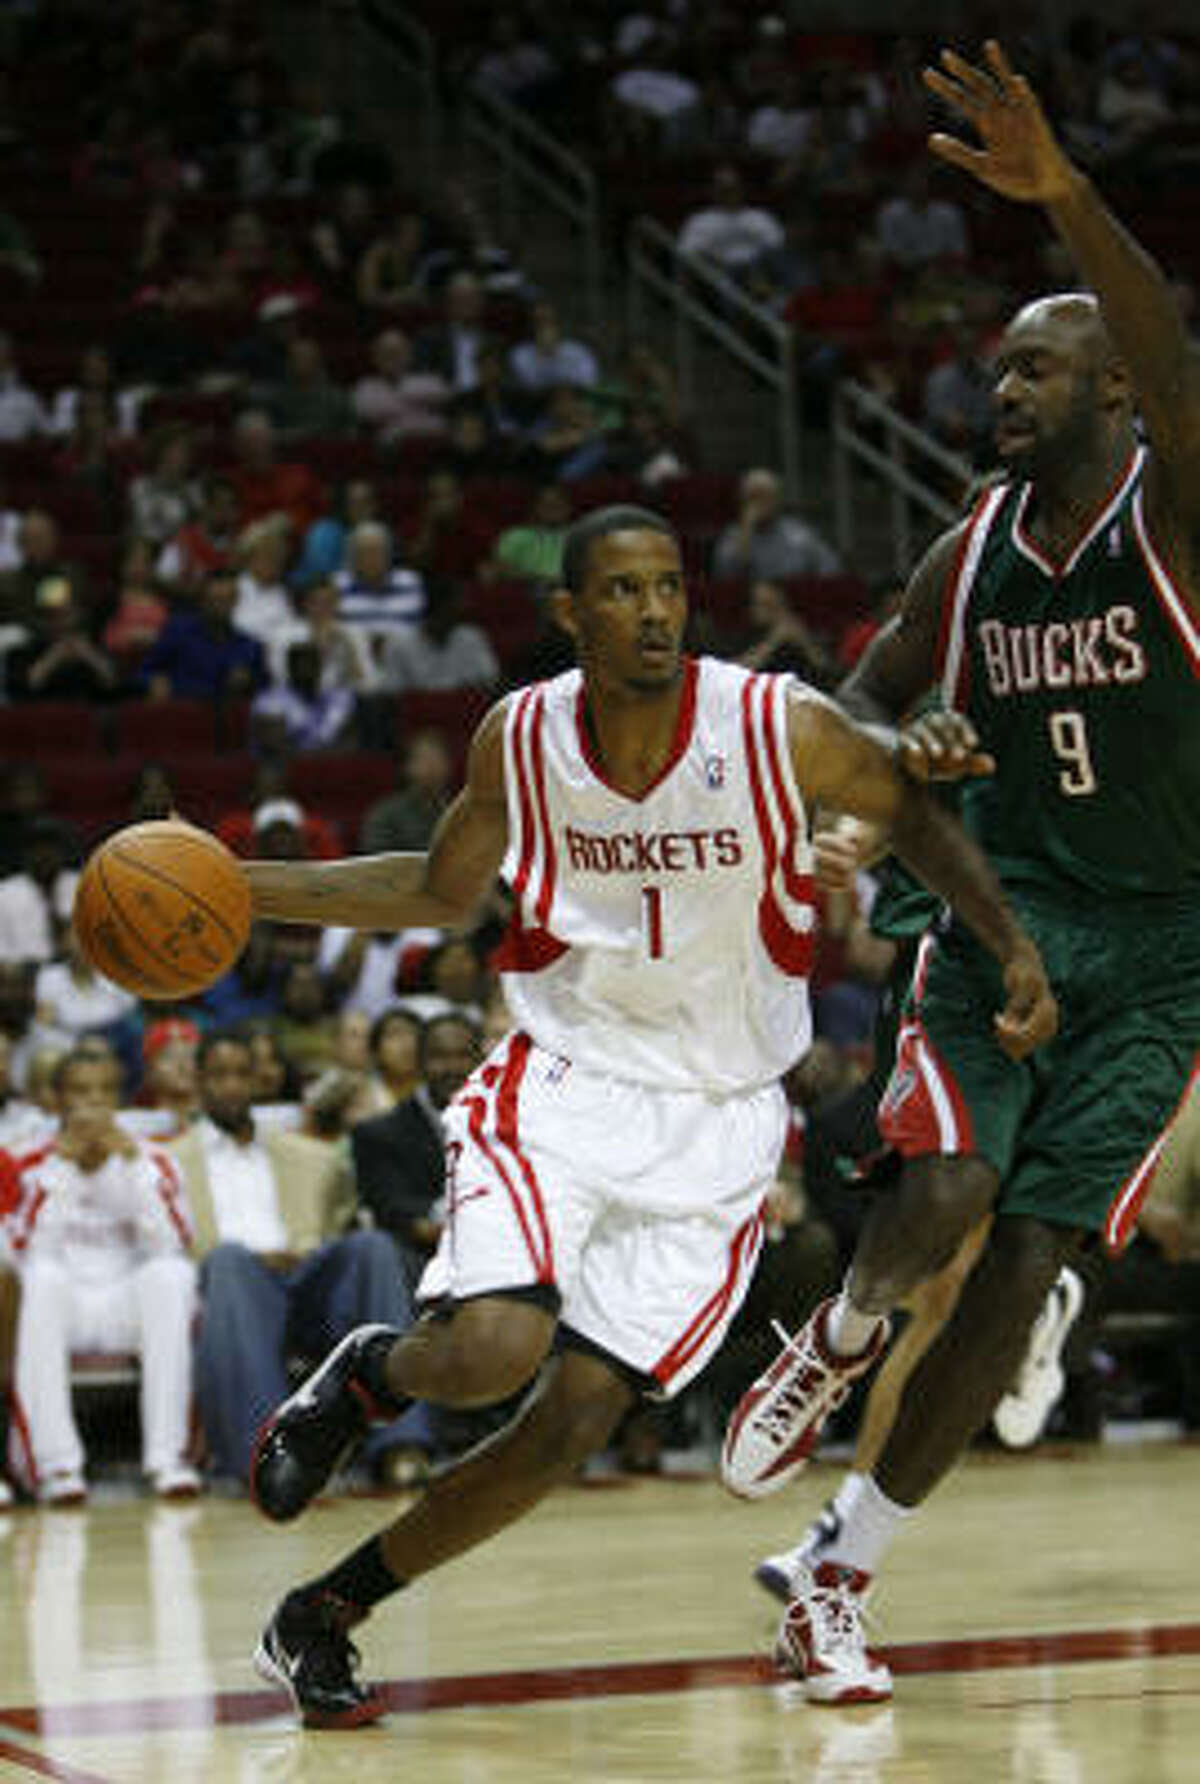 Rockets guard Trevor Ariza drives around Bucks' Francisco Elson during the first half.